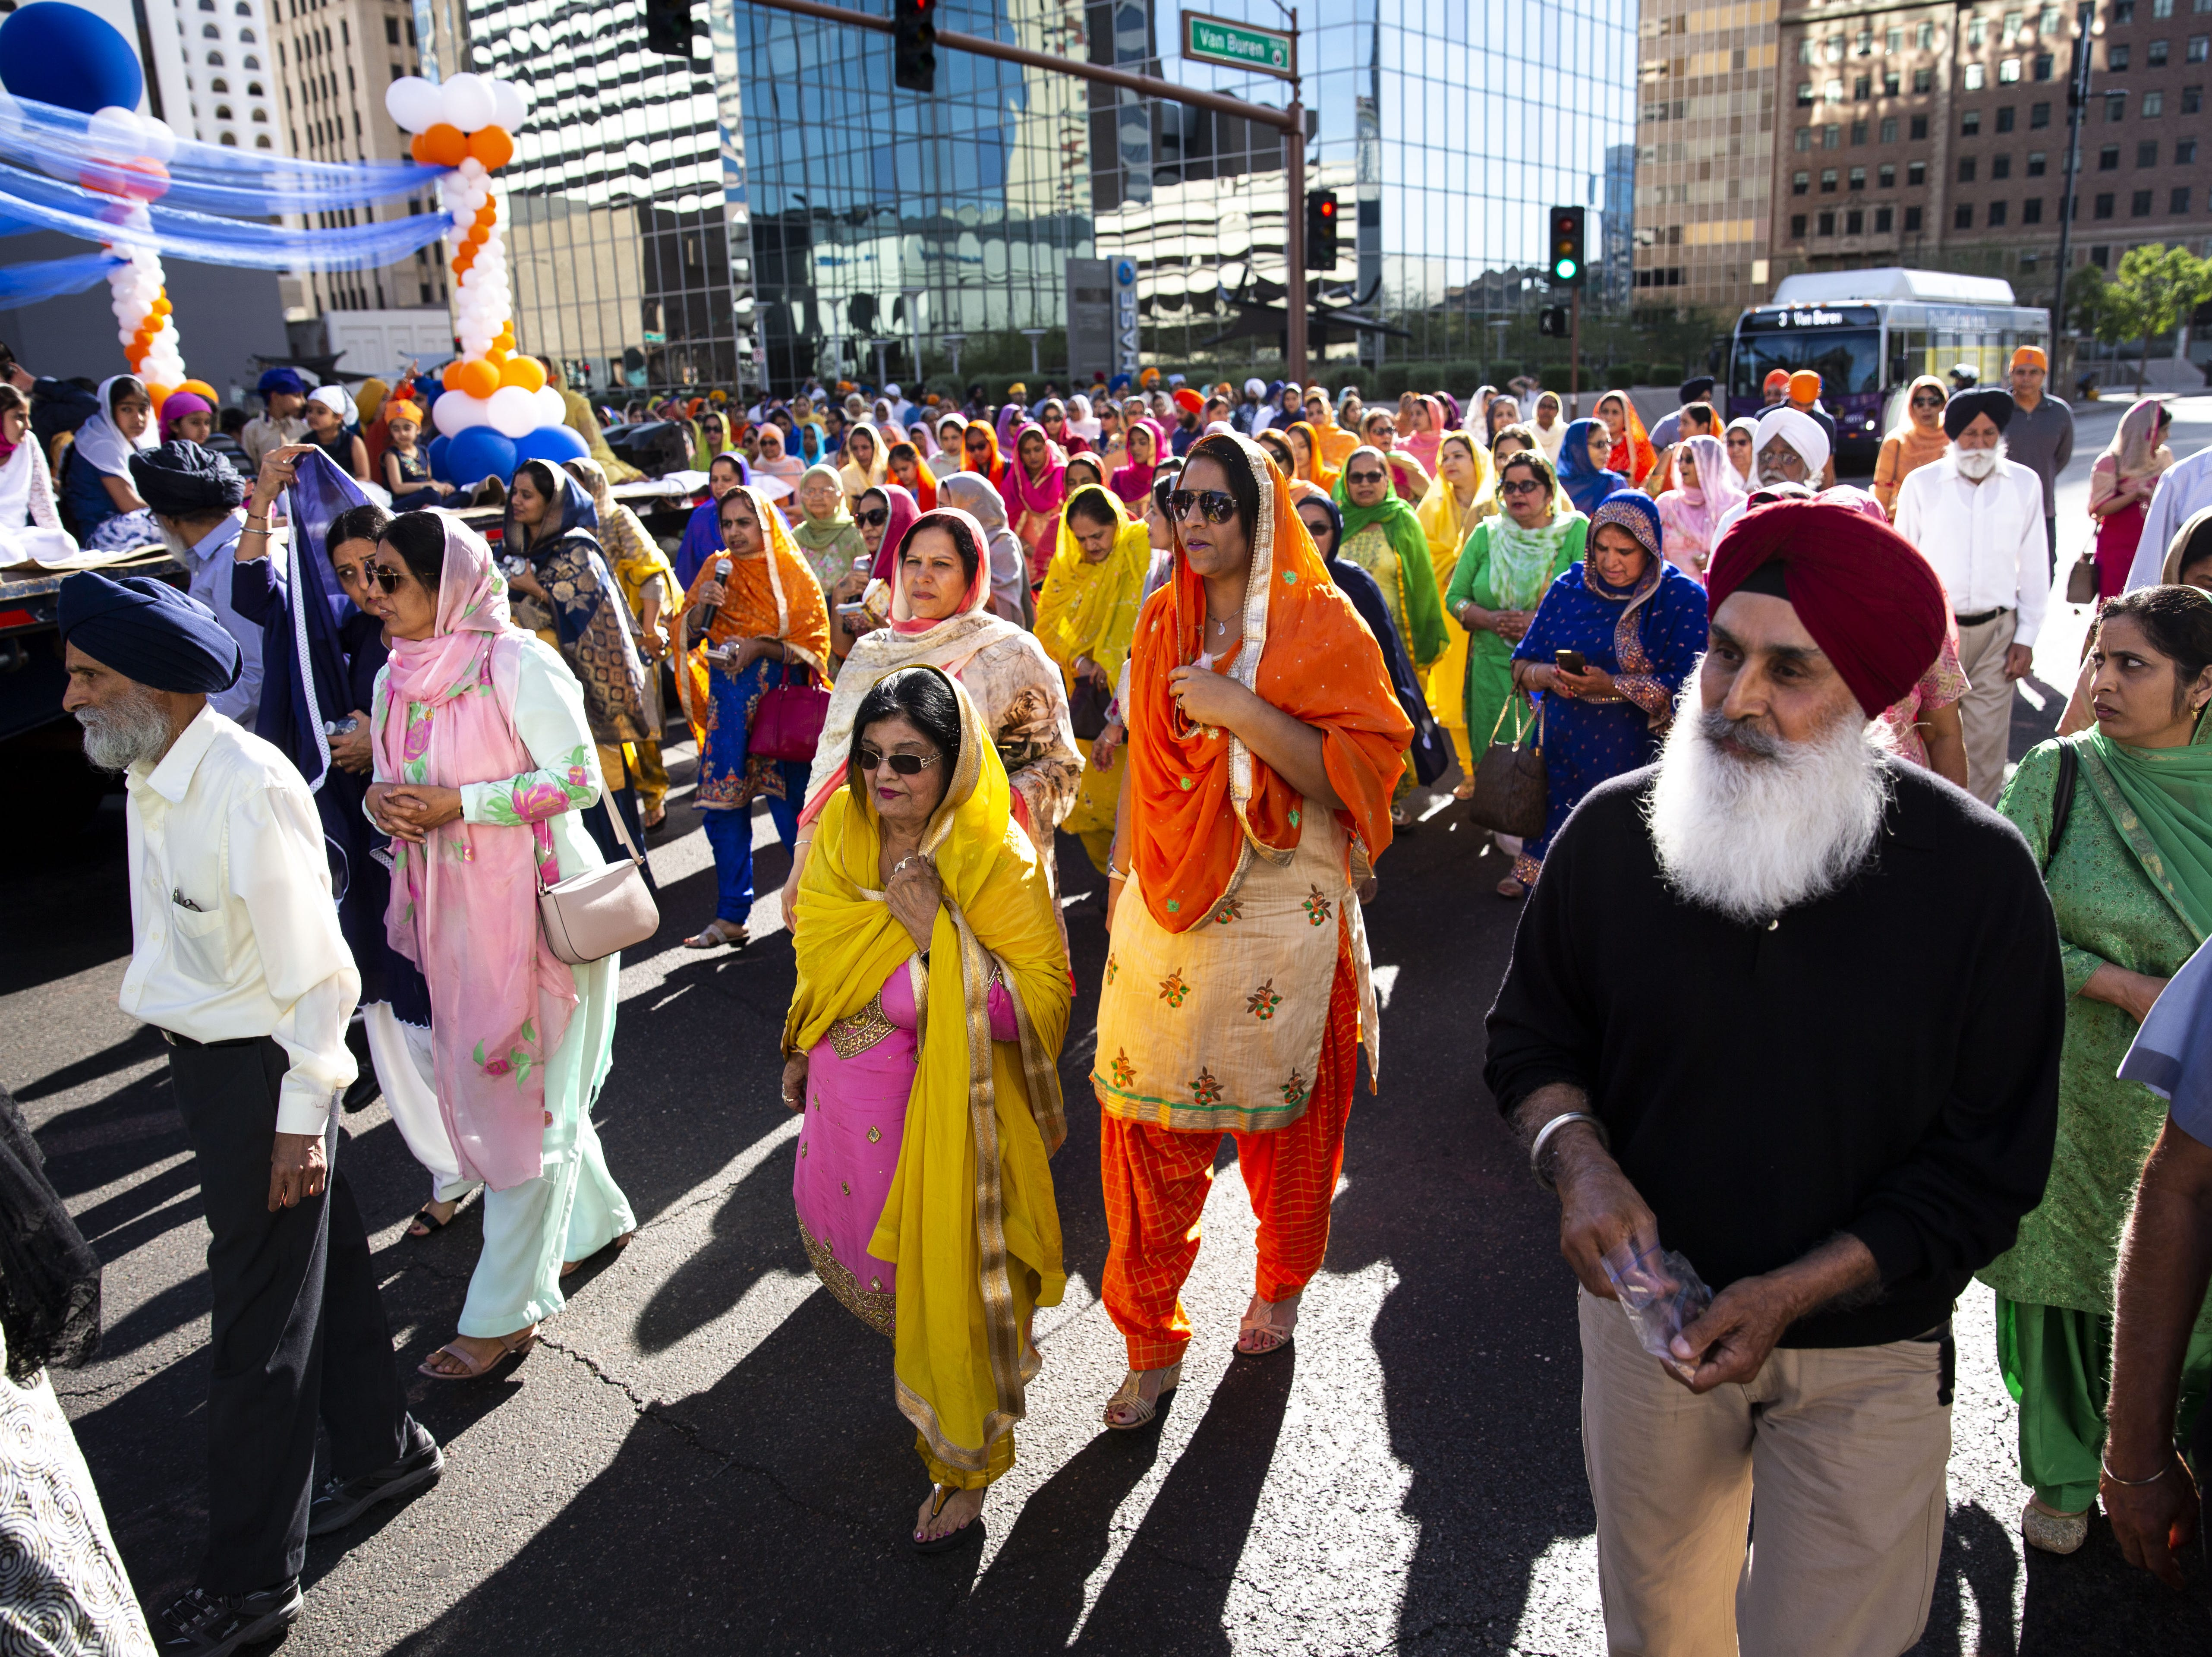 A crowd dressed in traditional clothing marches along with a Nagar Kirtan procession in downtown Phoenix on March 24, 2019.